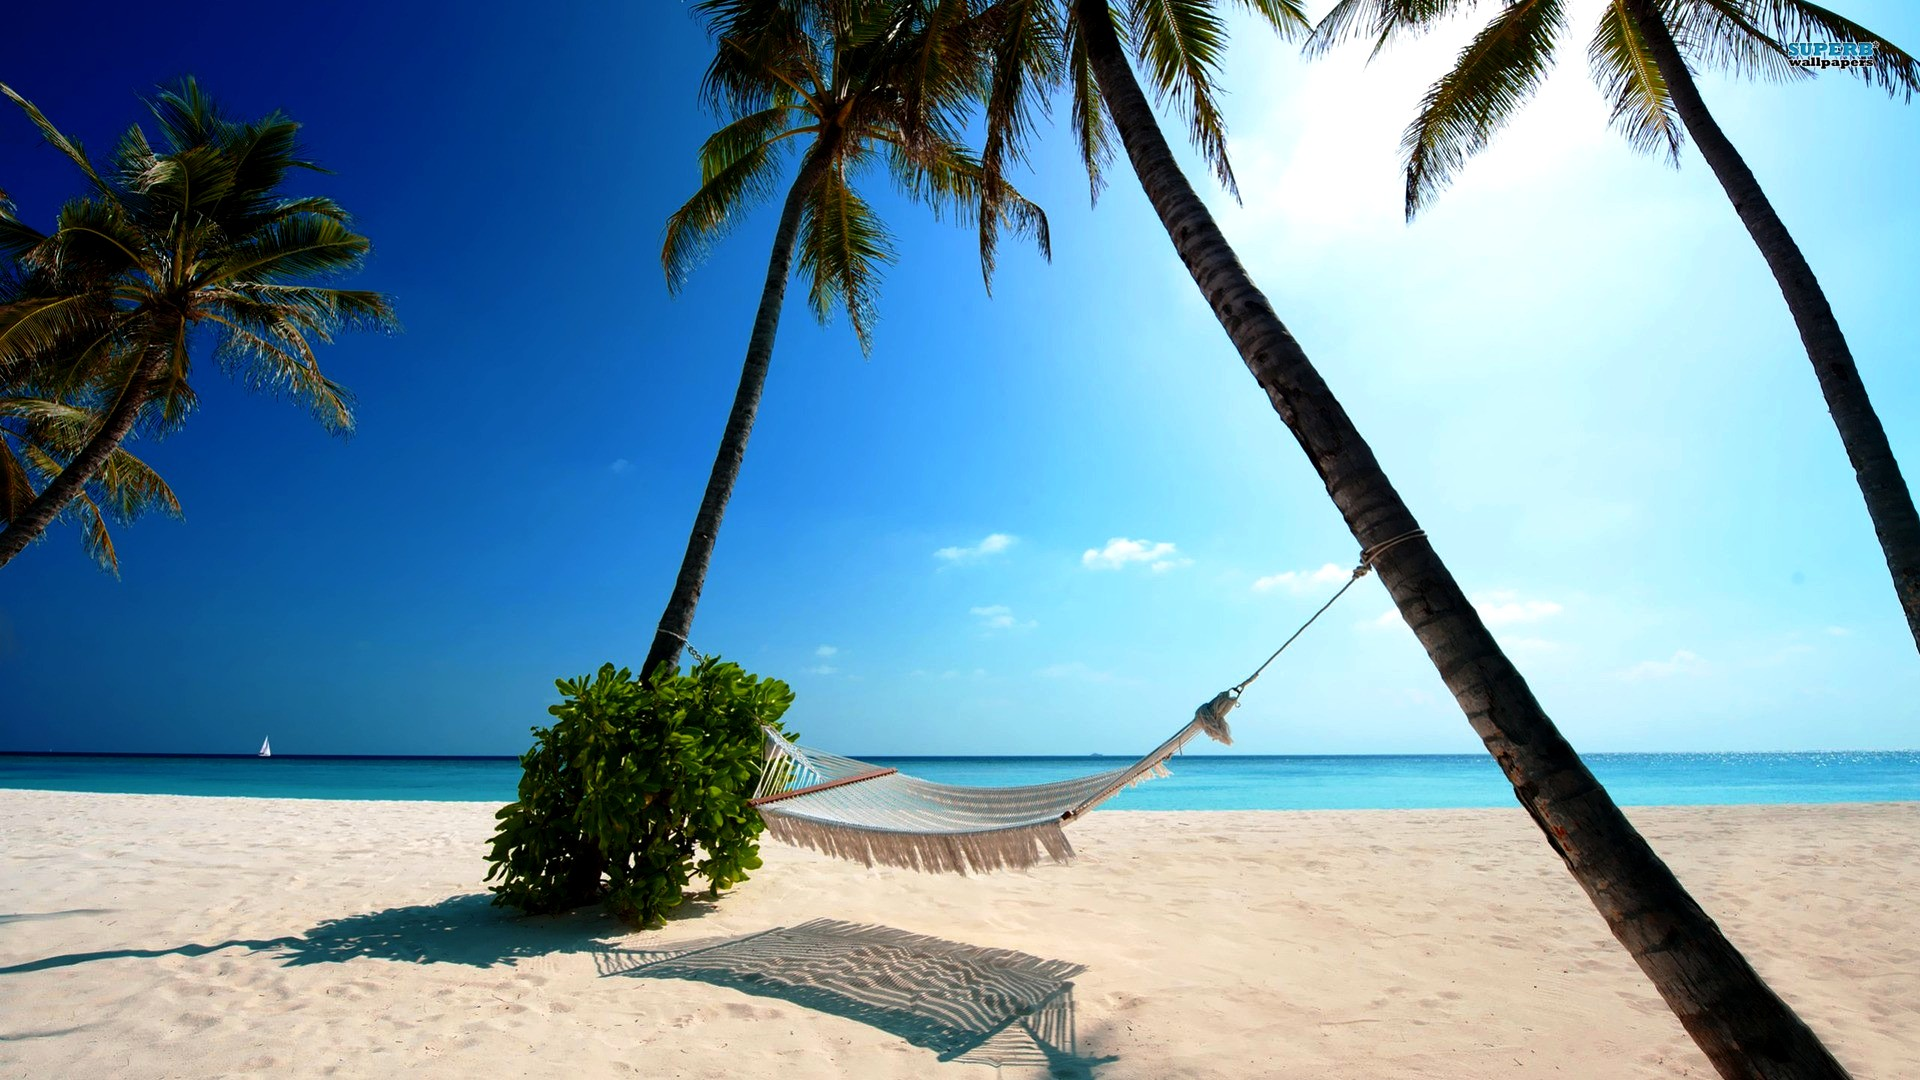 Free-Holiday-Wallpapers-for-Desktop-Summer-Beach